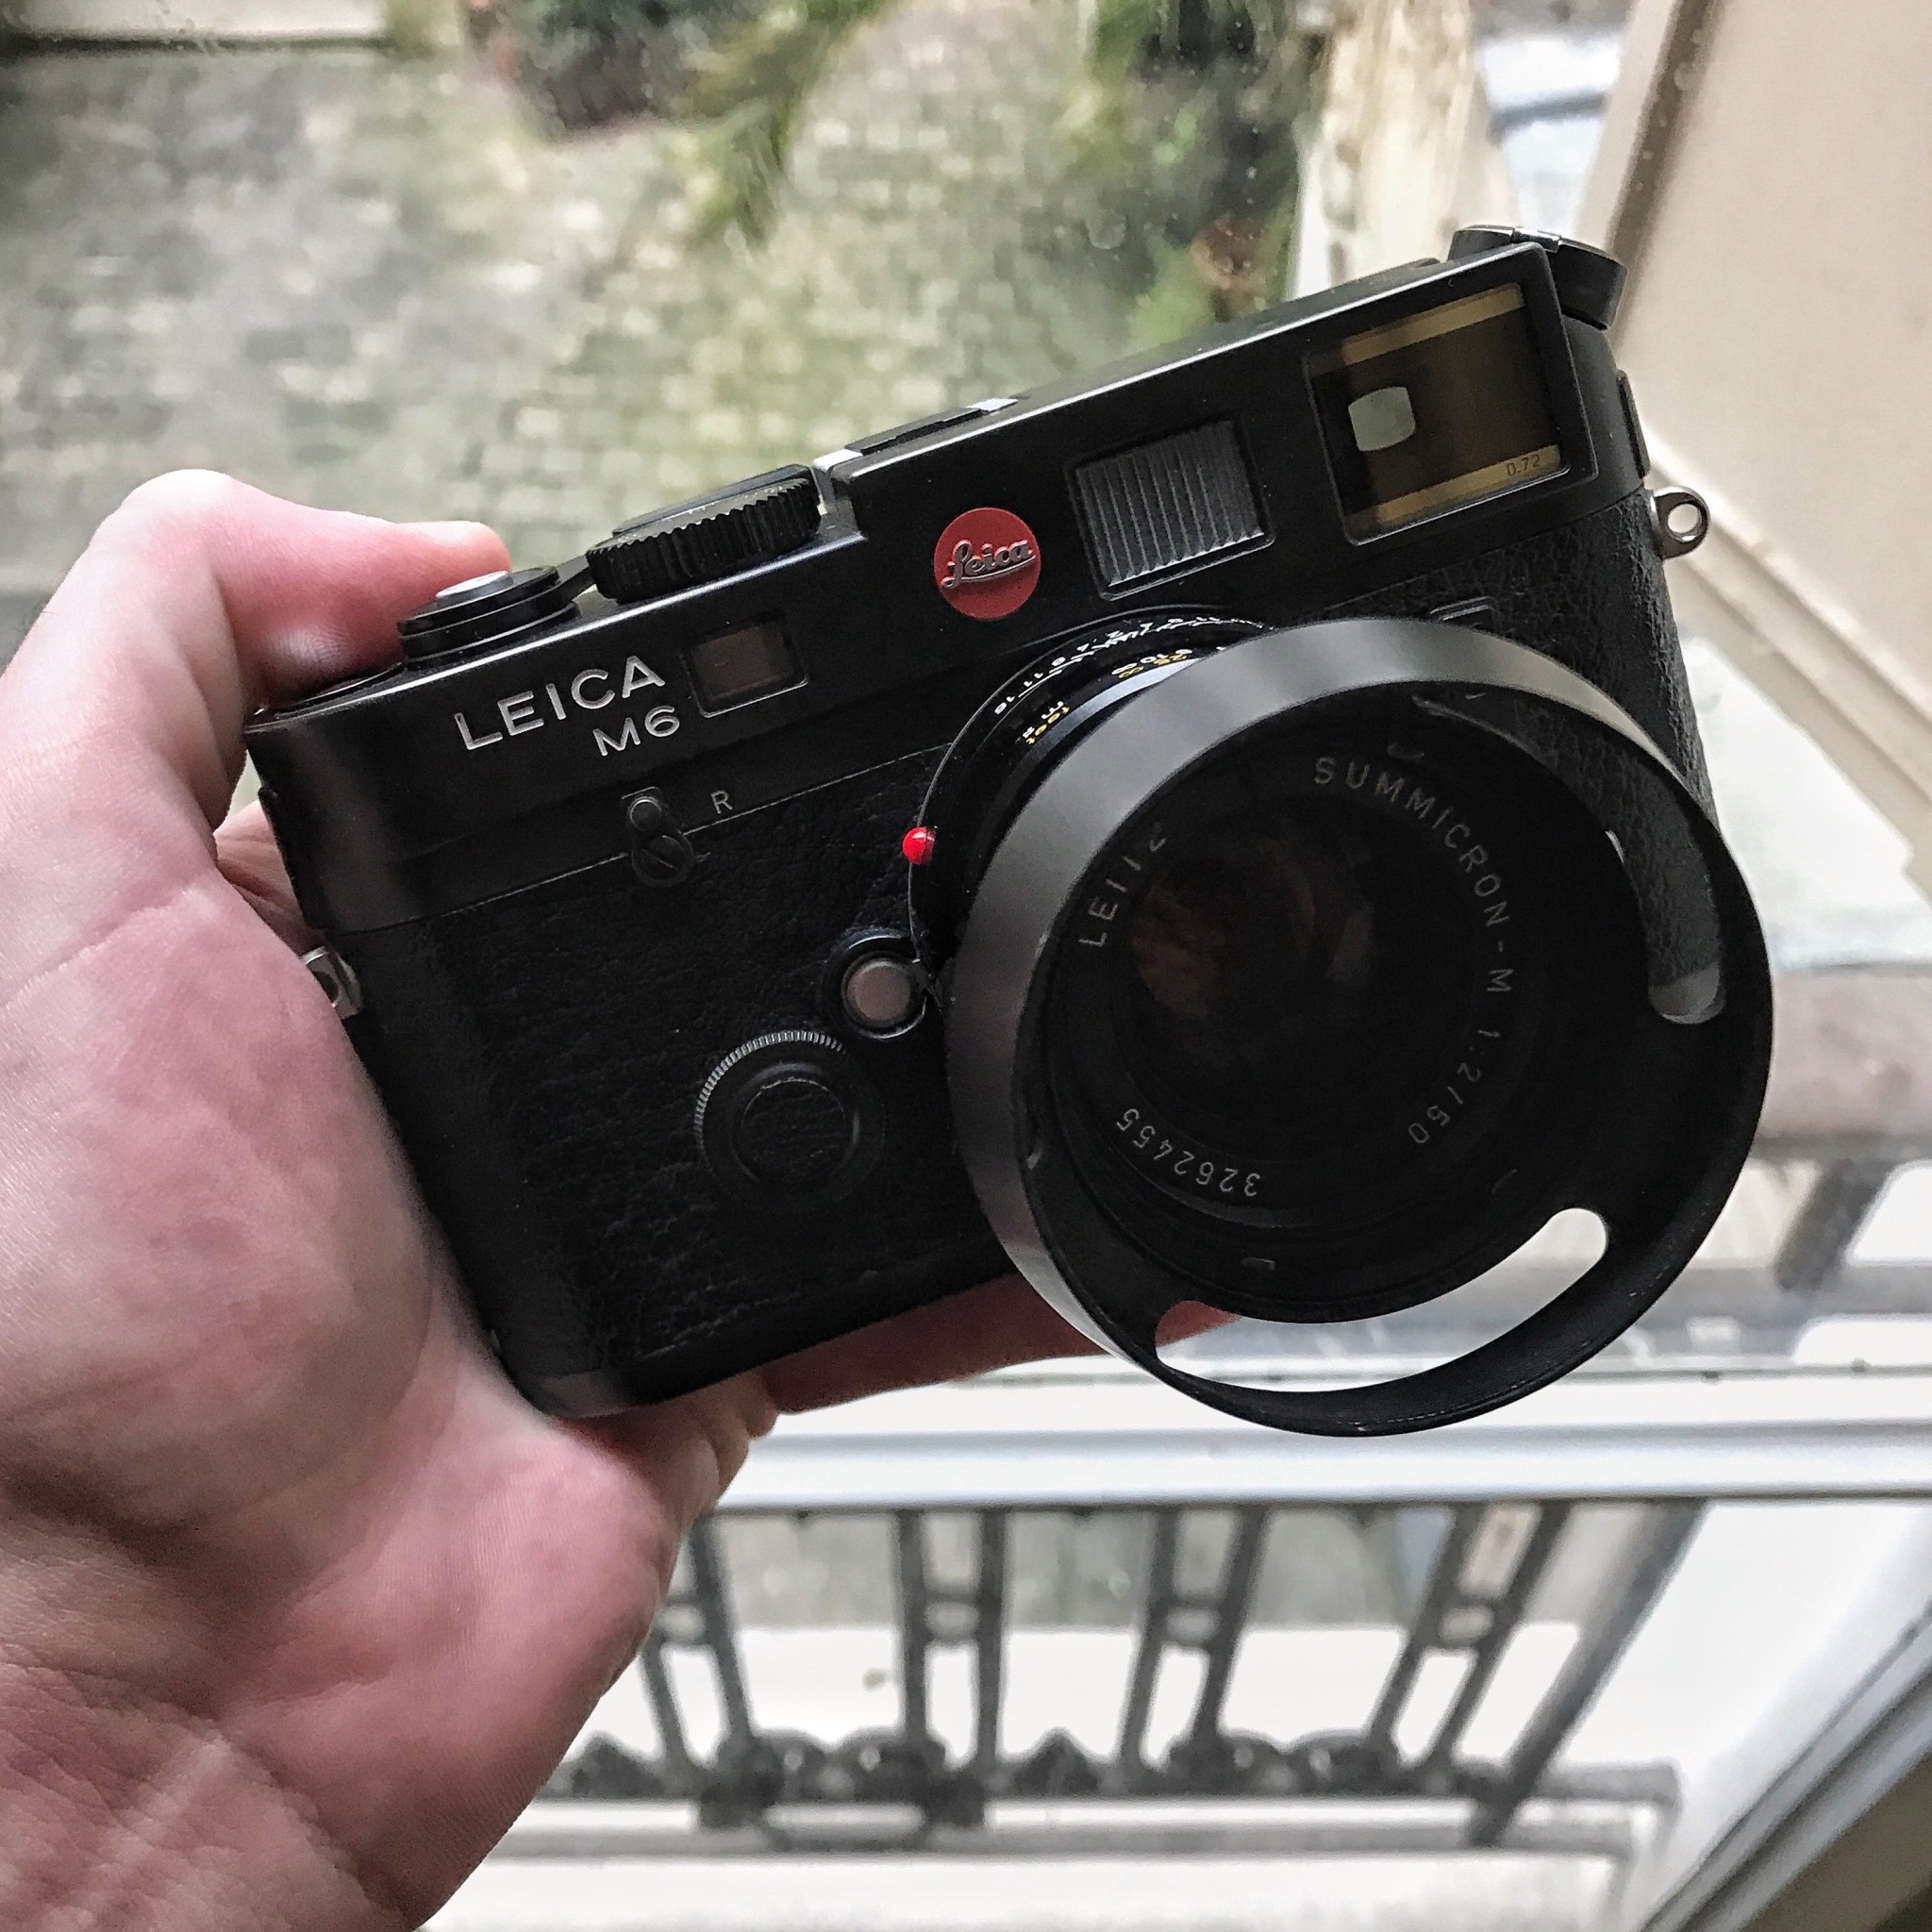 Why I love my Leica M6 TTL - Charles Tumiotto Jackson - Medium